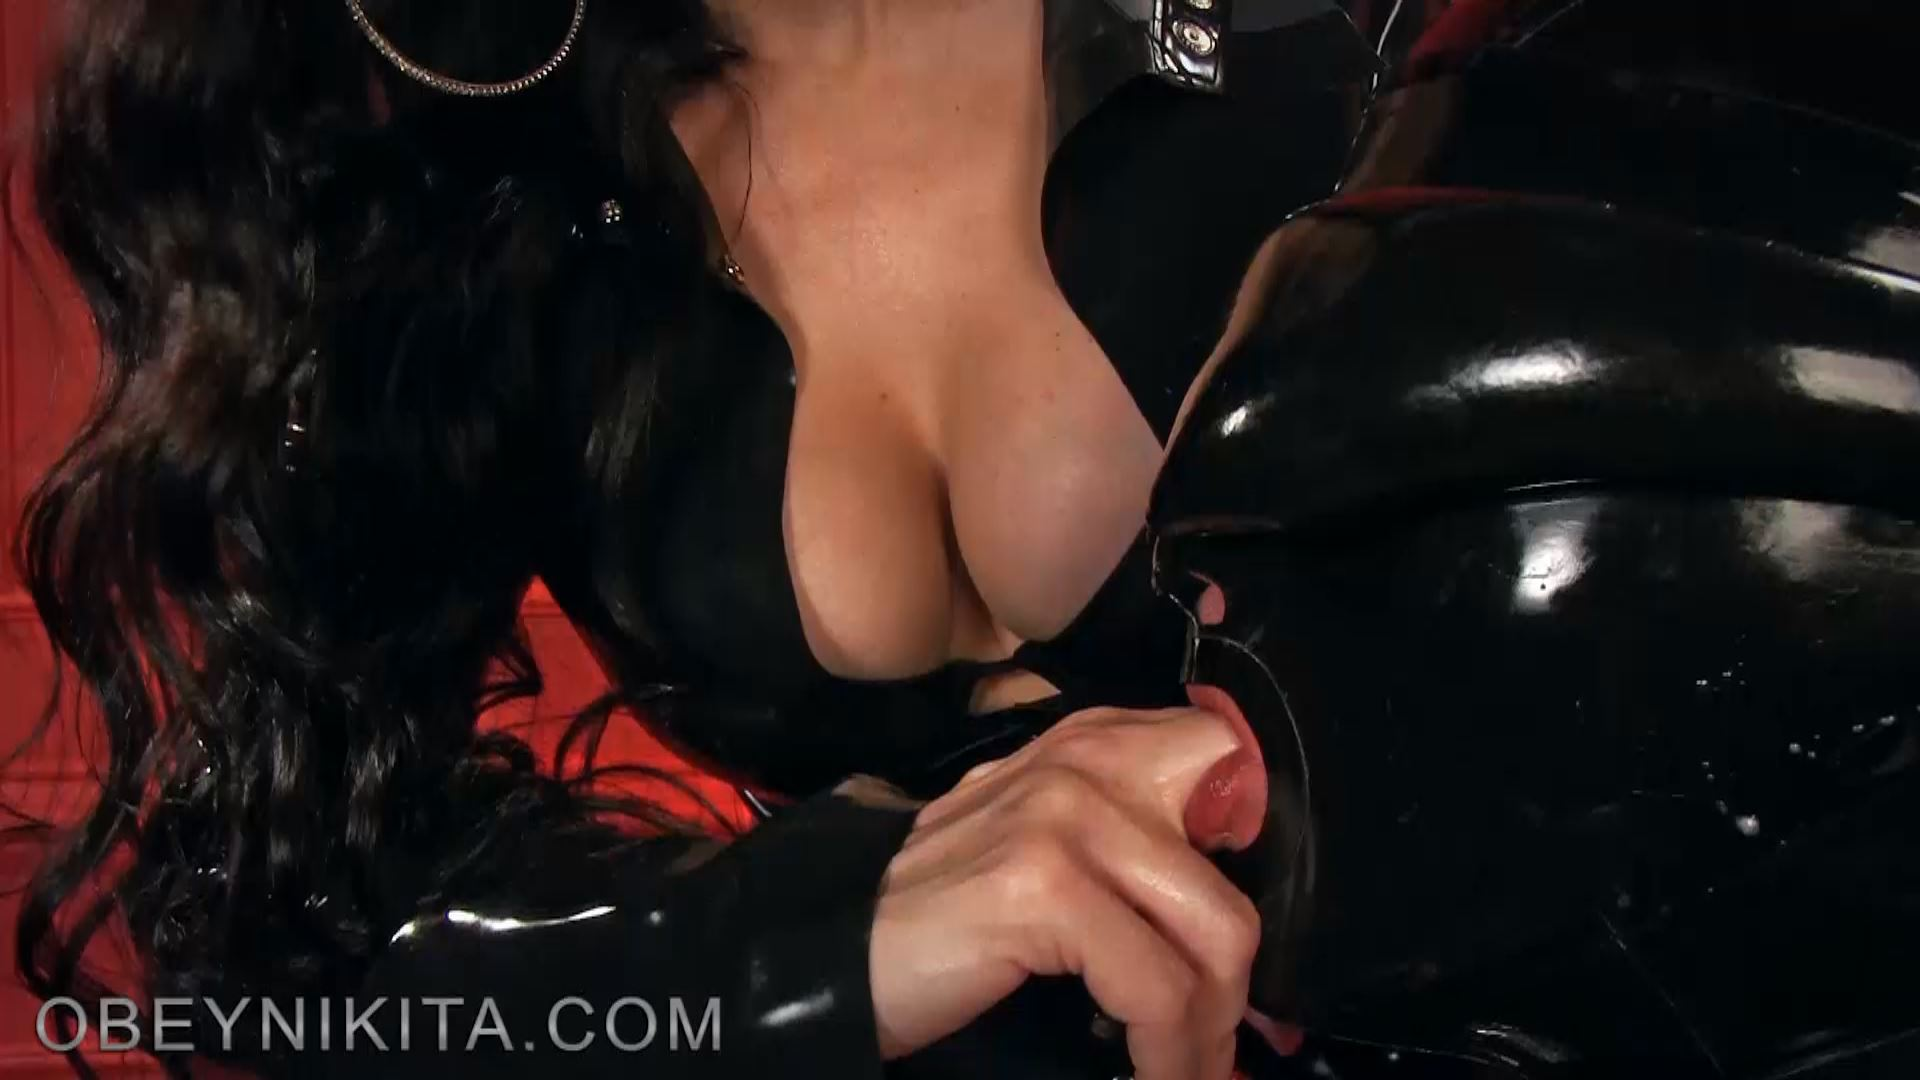 NAIL CONTROL. FEATURING: MISTRESS NIKITA - OBEYNIKITA - FULL HD/1080p/MP4